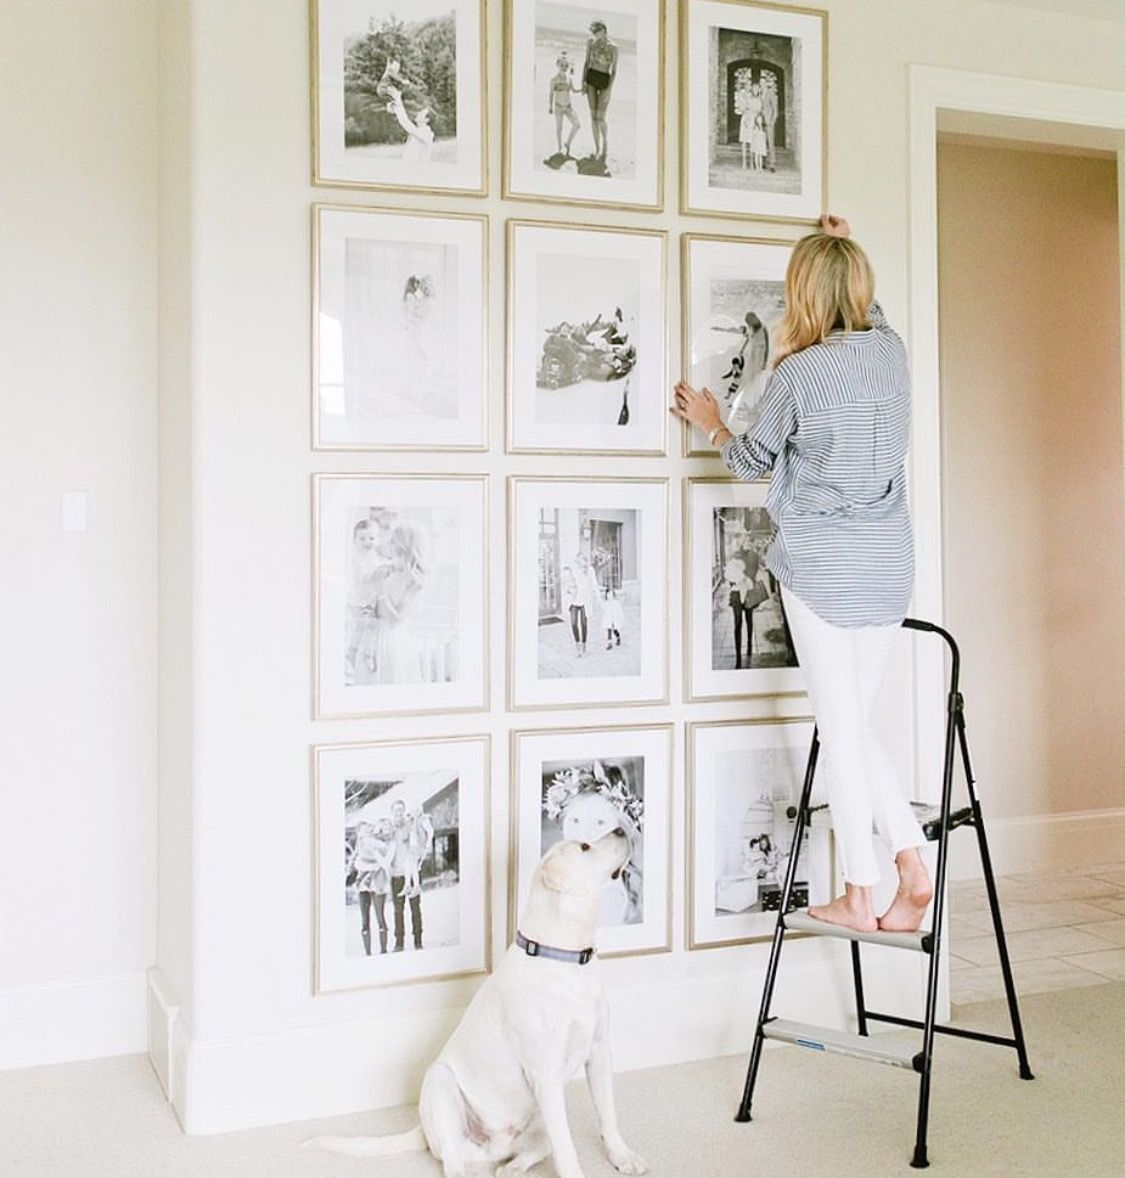 Pin by Viktorija Stapone on Mixas | Pinterest | Home, Gallery wall ...